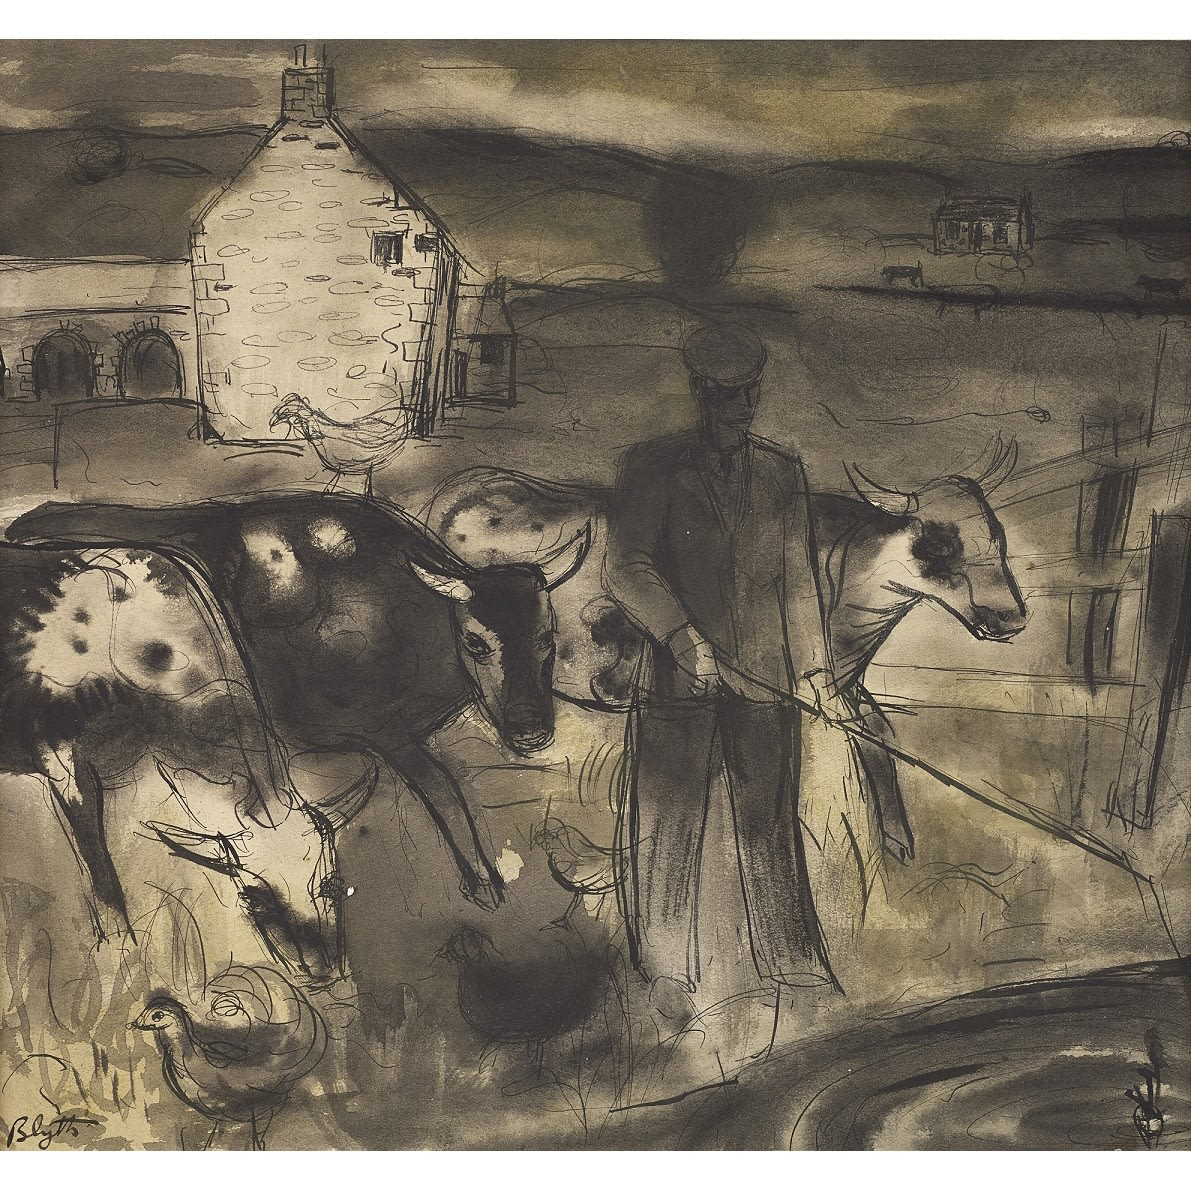 Robert Henderson Blyth A cowhand signed ink and wash 9 1/4 x 10 1/4 inches